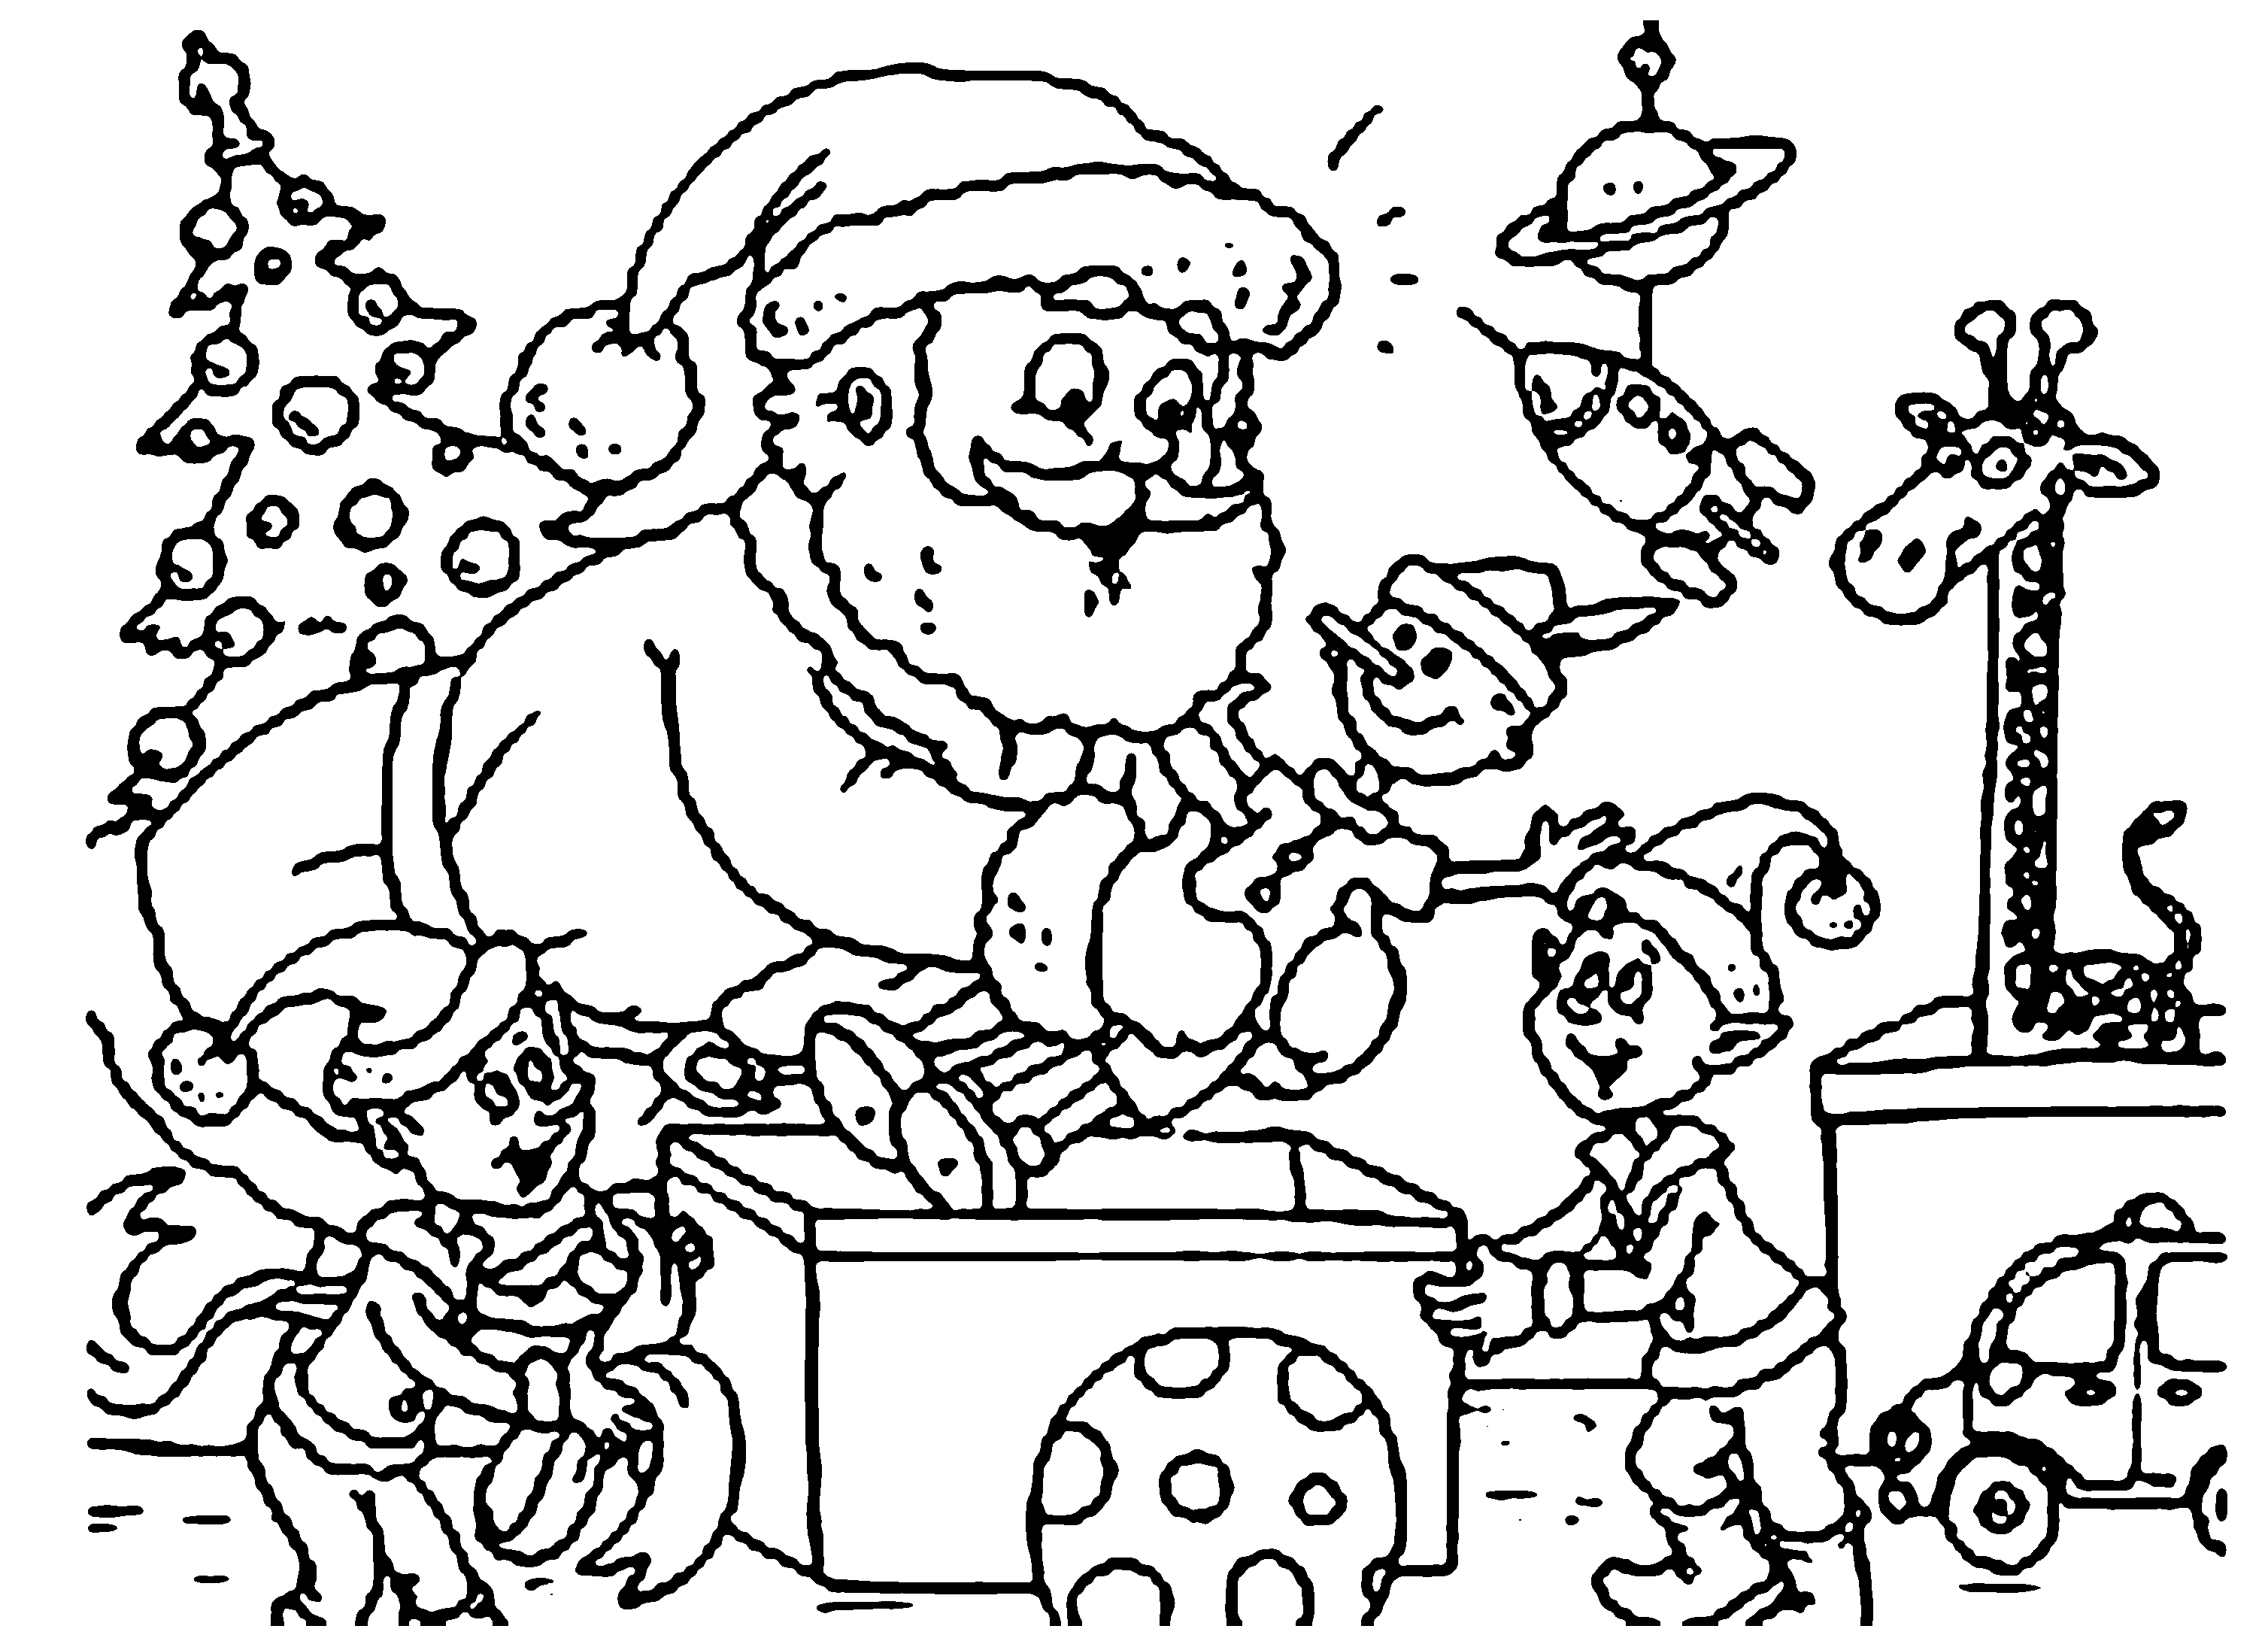 elf on the shelf coloring sheets 7 elf on the shelf inspired coloring pages to get kids elf coloring sheets the shelf on